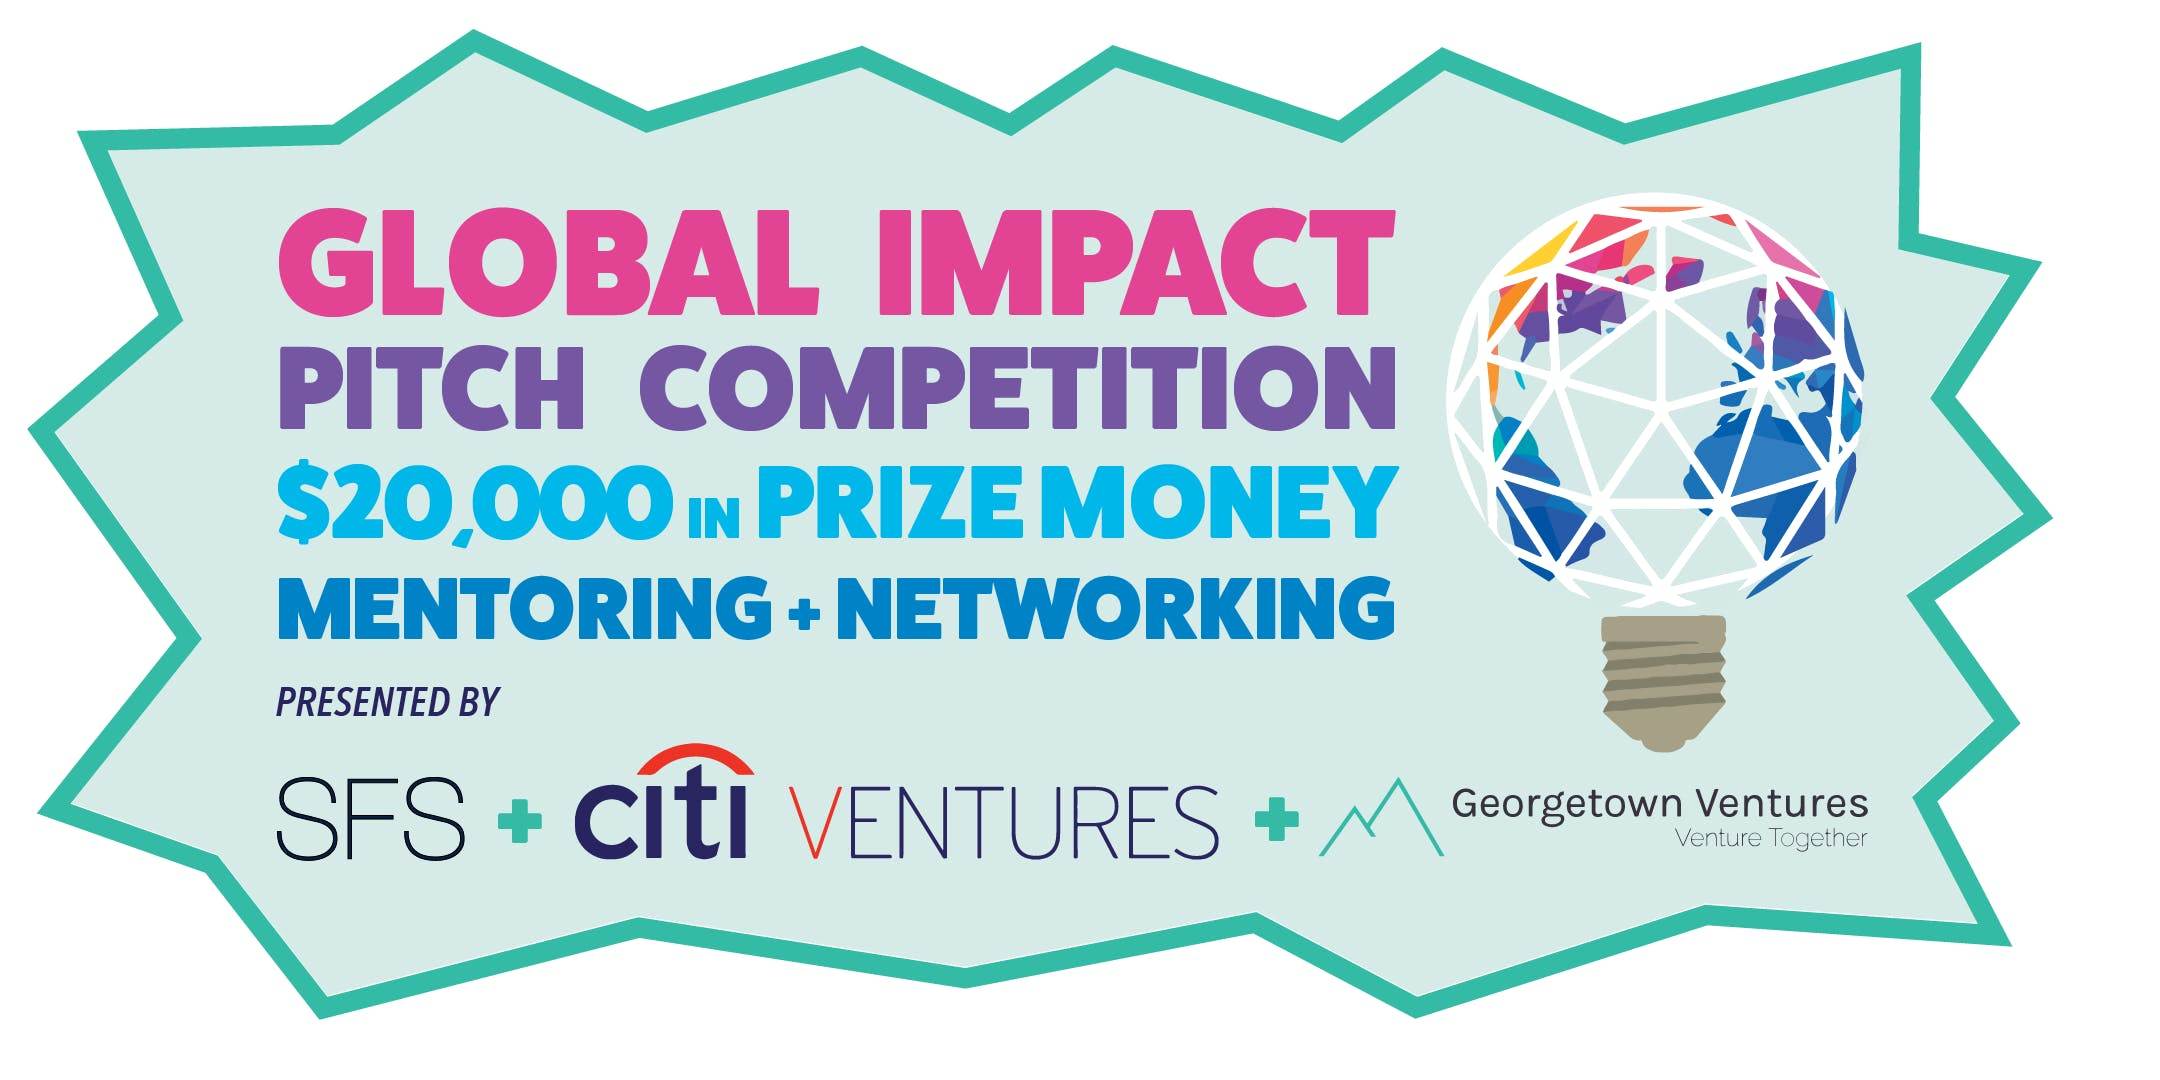 Global Impact Pitch Competition